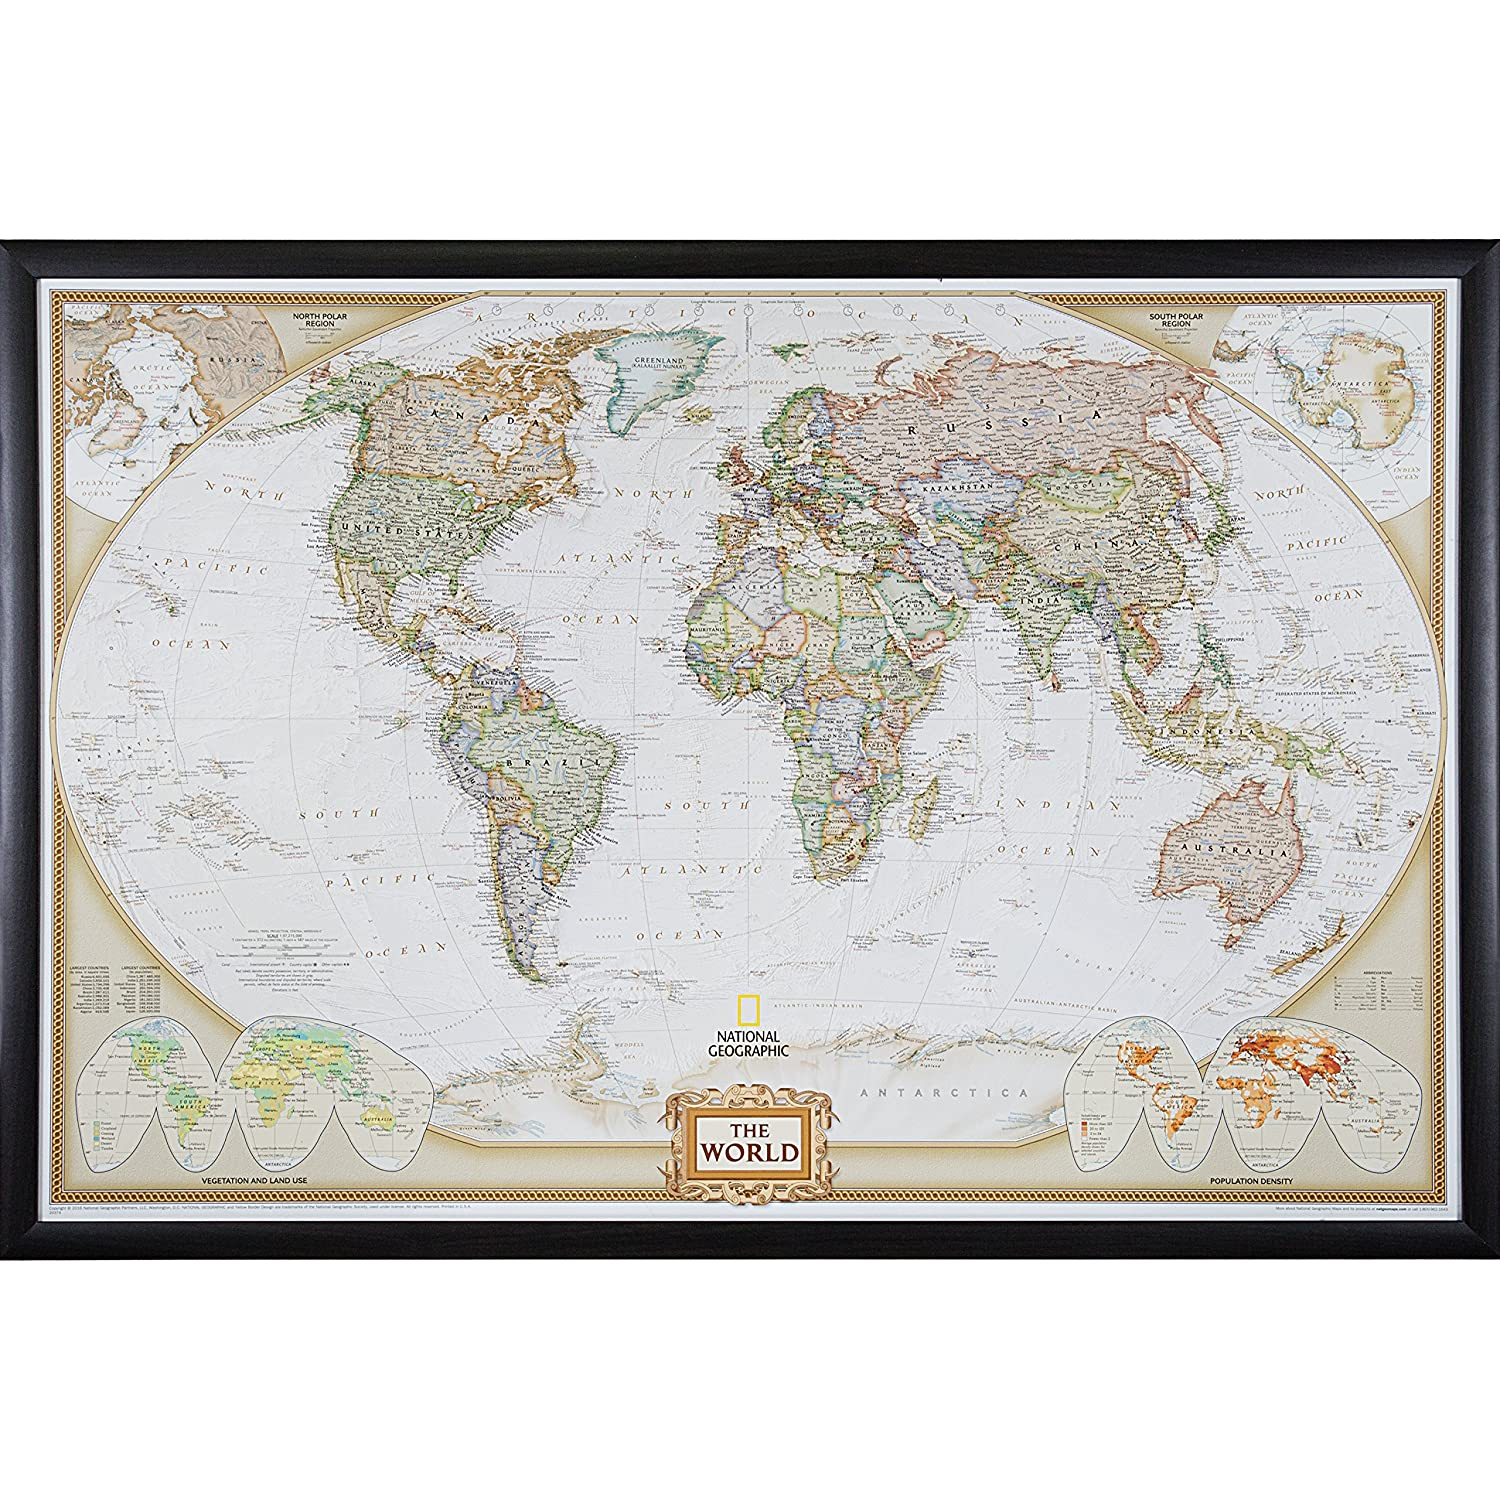 Amazon craig frames wayfarer executive world push pin travel amazon craig frames wayfarer executive world push pin travel map brazilian walnut frame and pins 24 by 36 inch wall art gumiabroncs